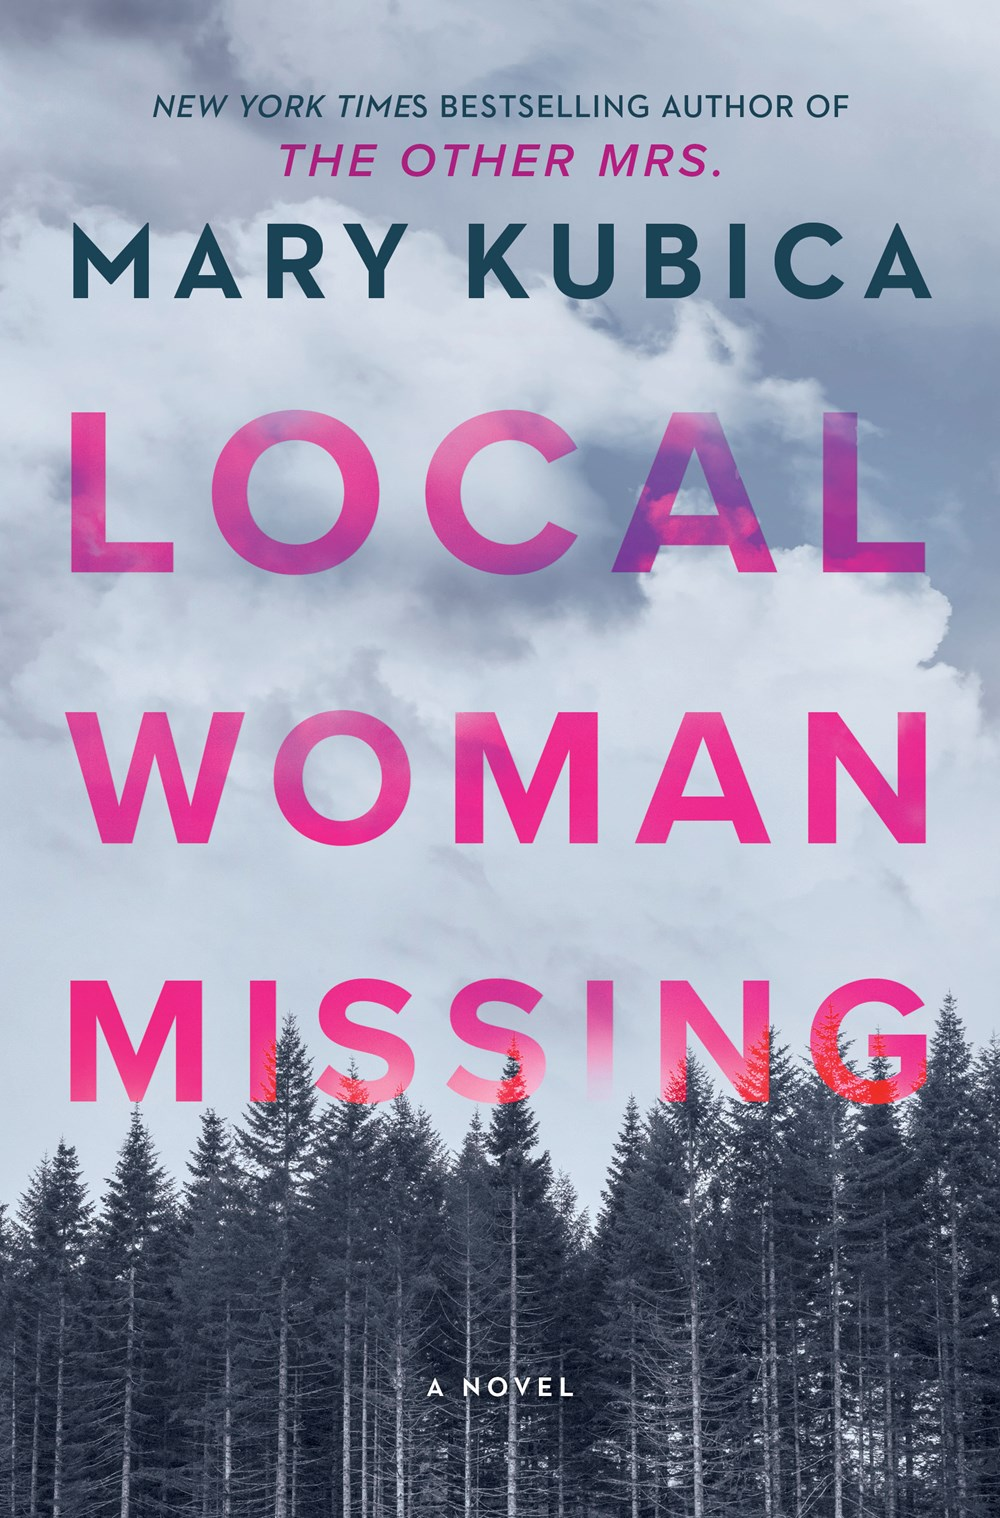 LOCAL WOMAN MISSING - MKubica